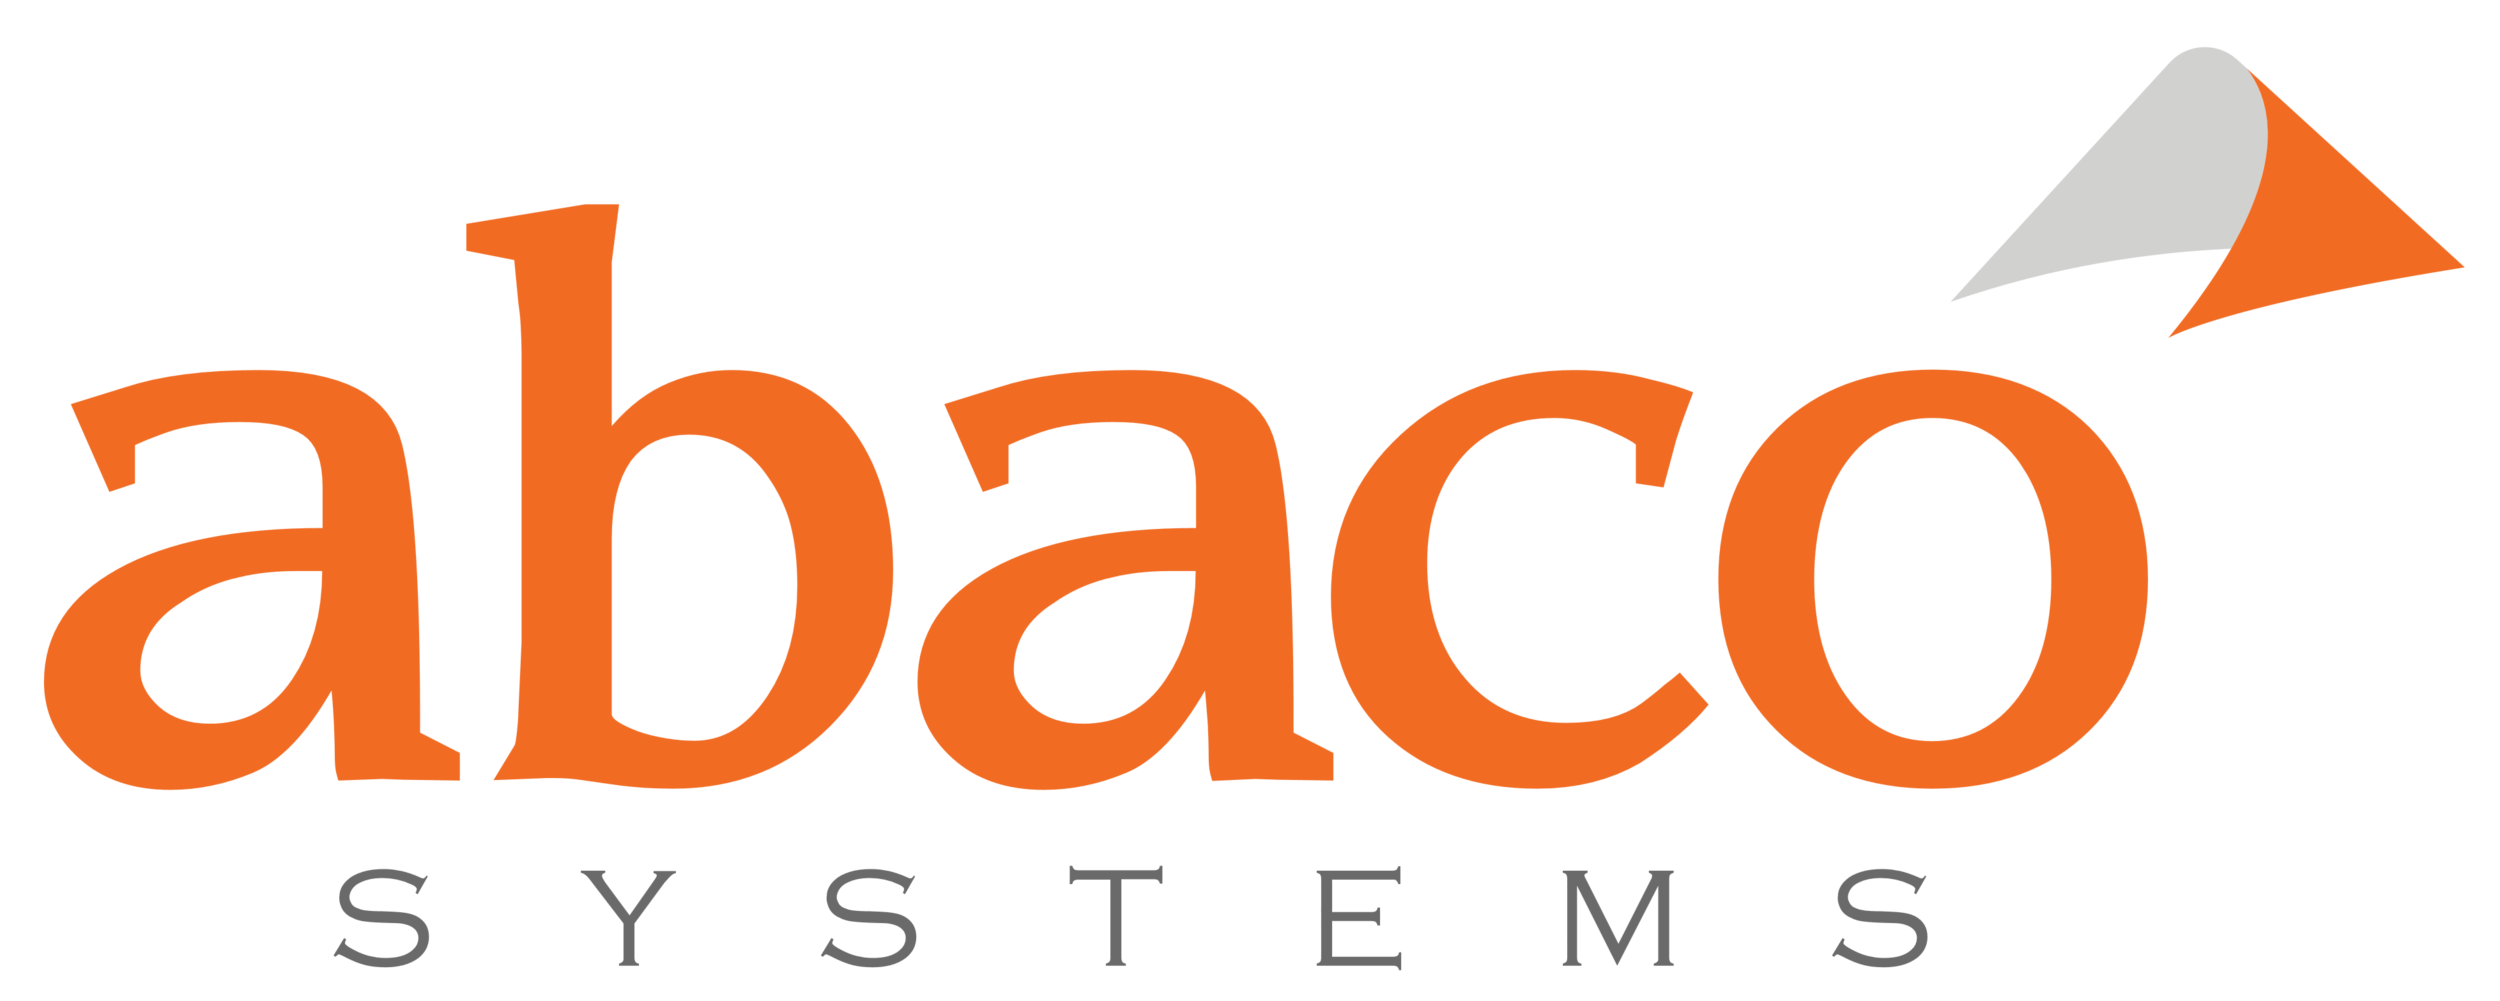 Abaco Systems.png